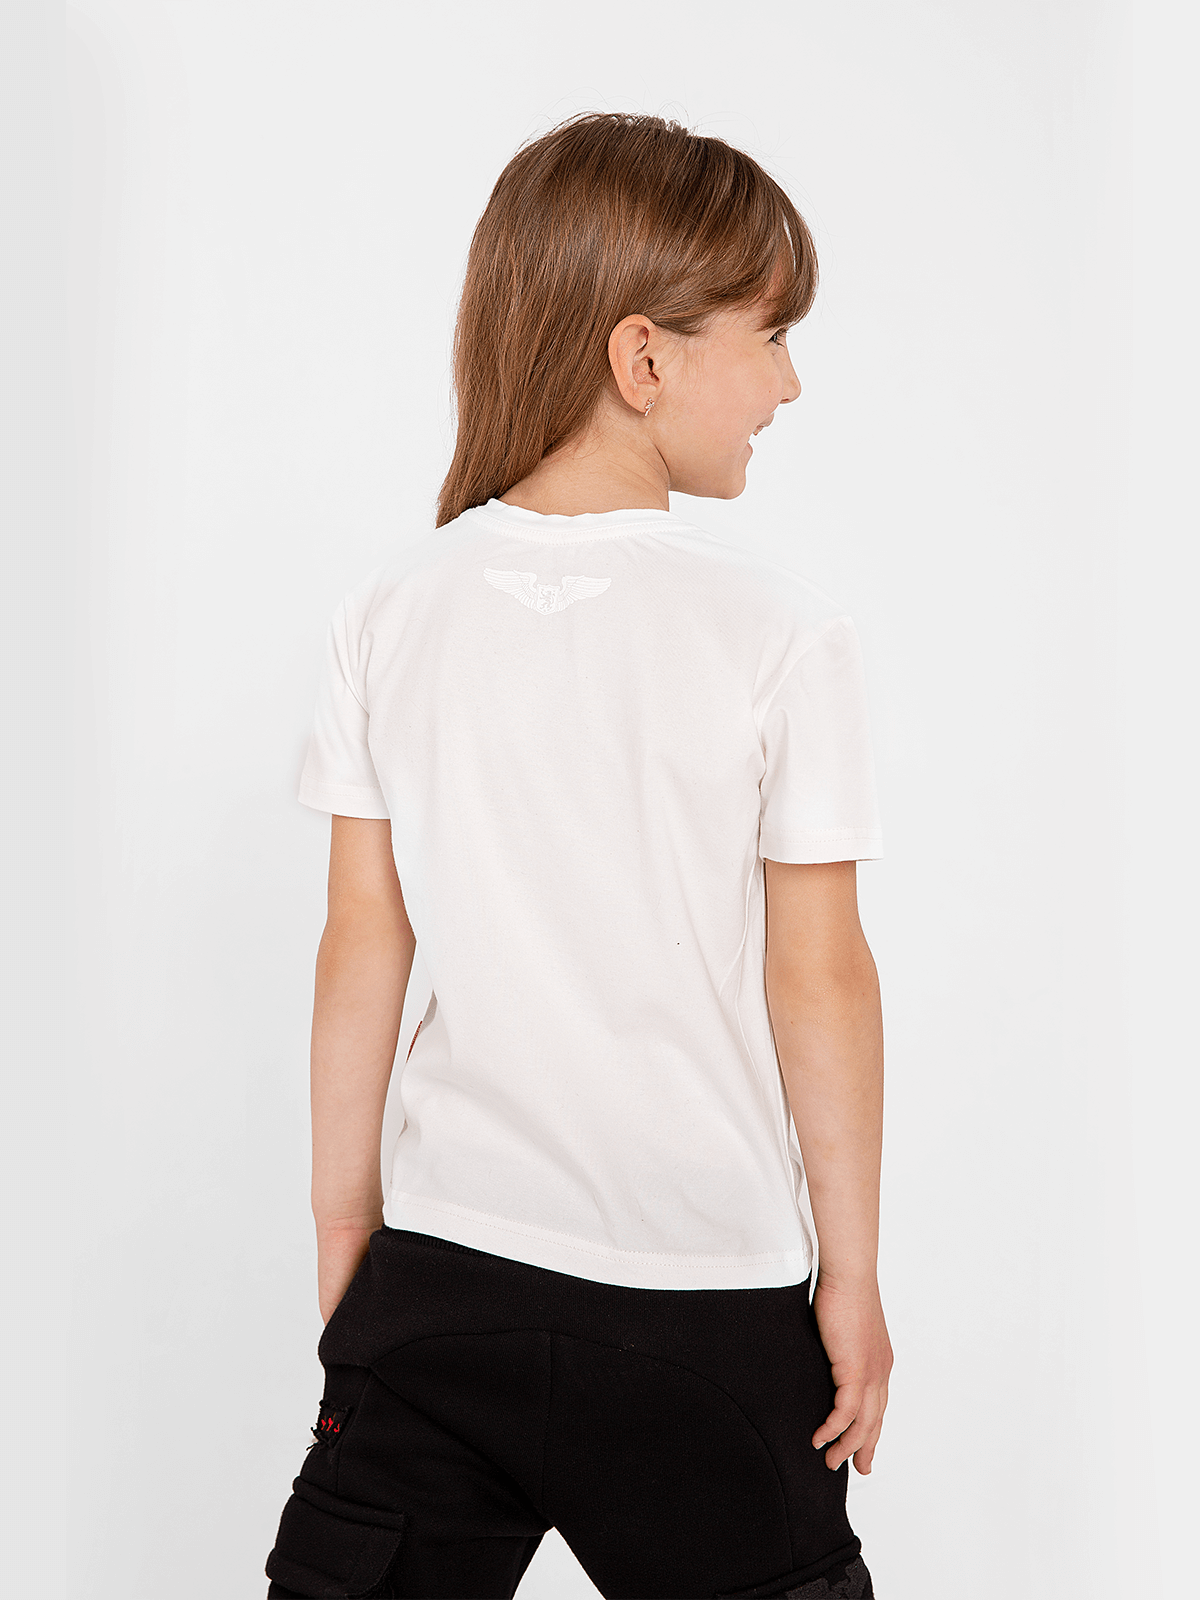 Kids T-Shirt Flu. Color off-white. .